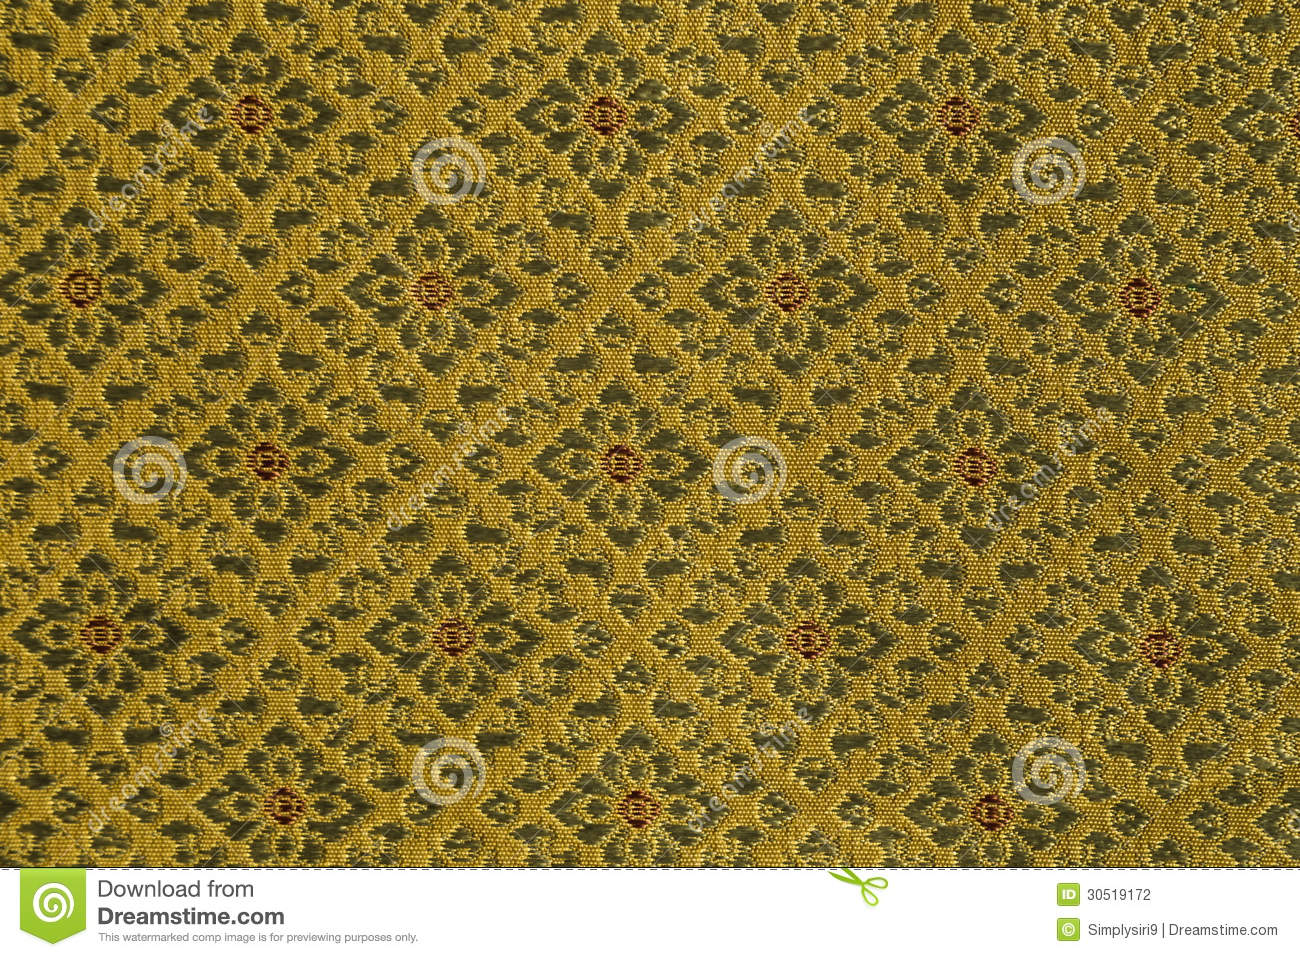 Hand woven traditional thai silk brocade design stock photography image 30519172 - Brocade home decor style ...